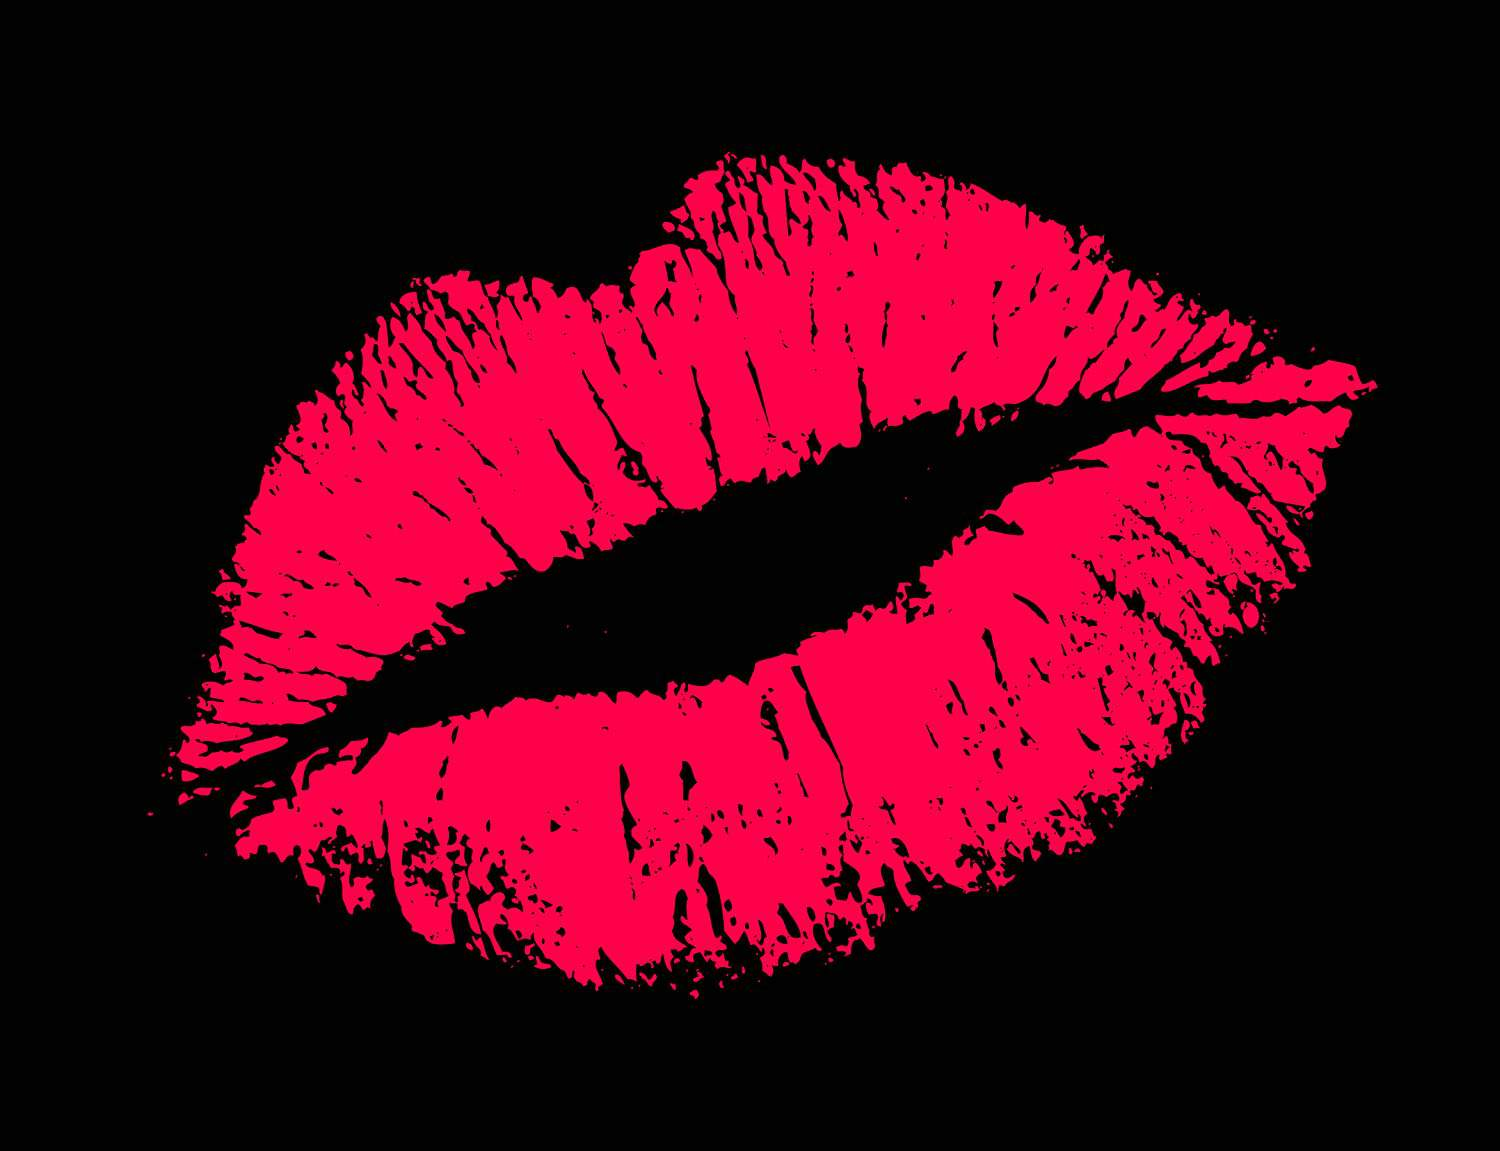 Lips Wallpaper For Walls